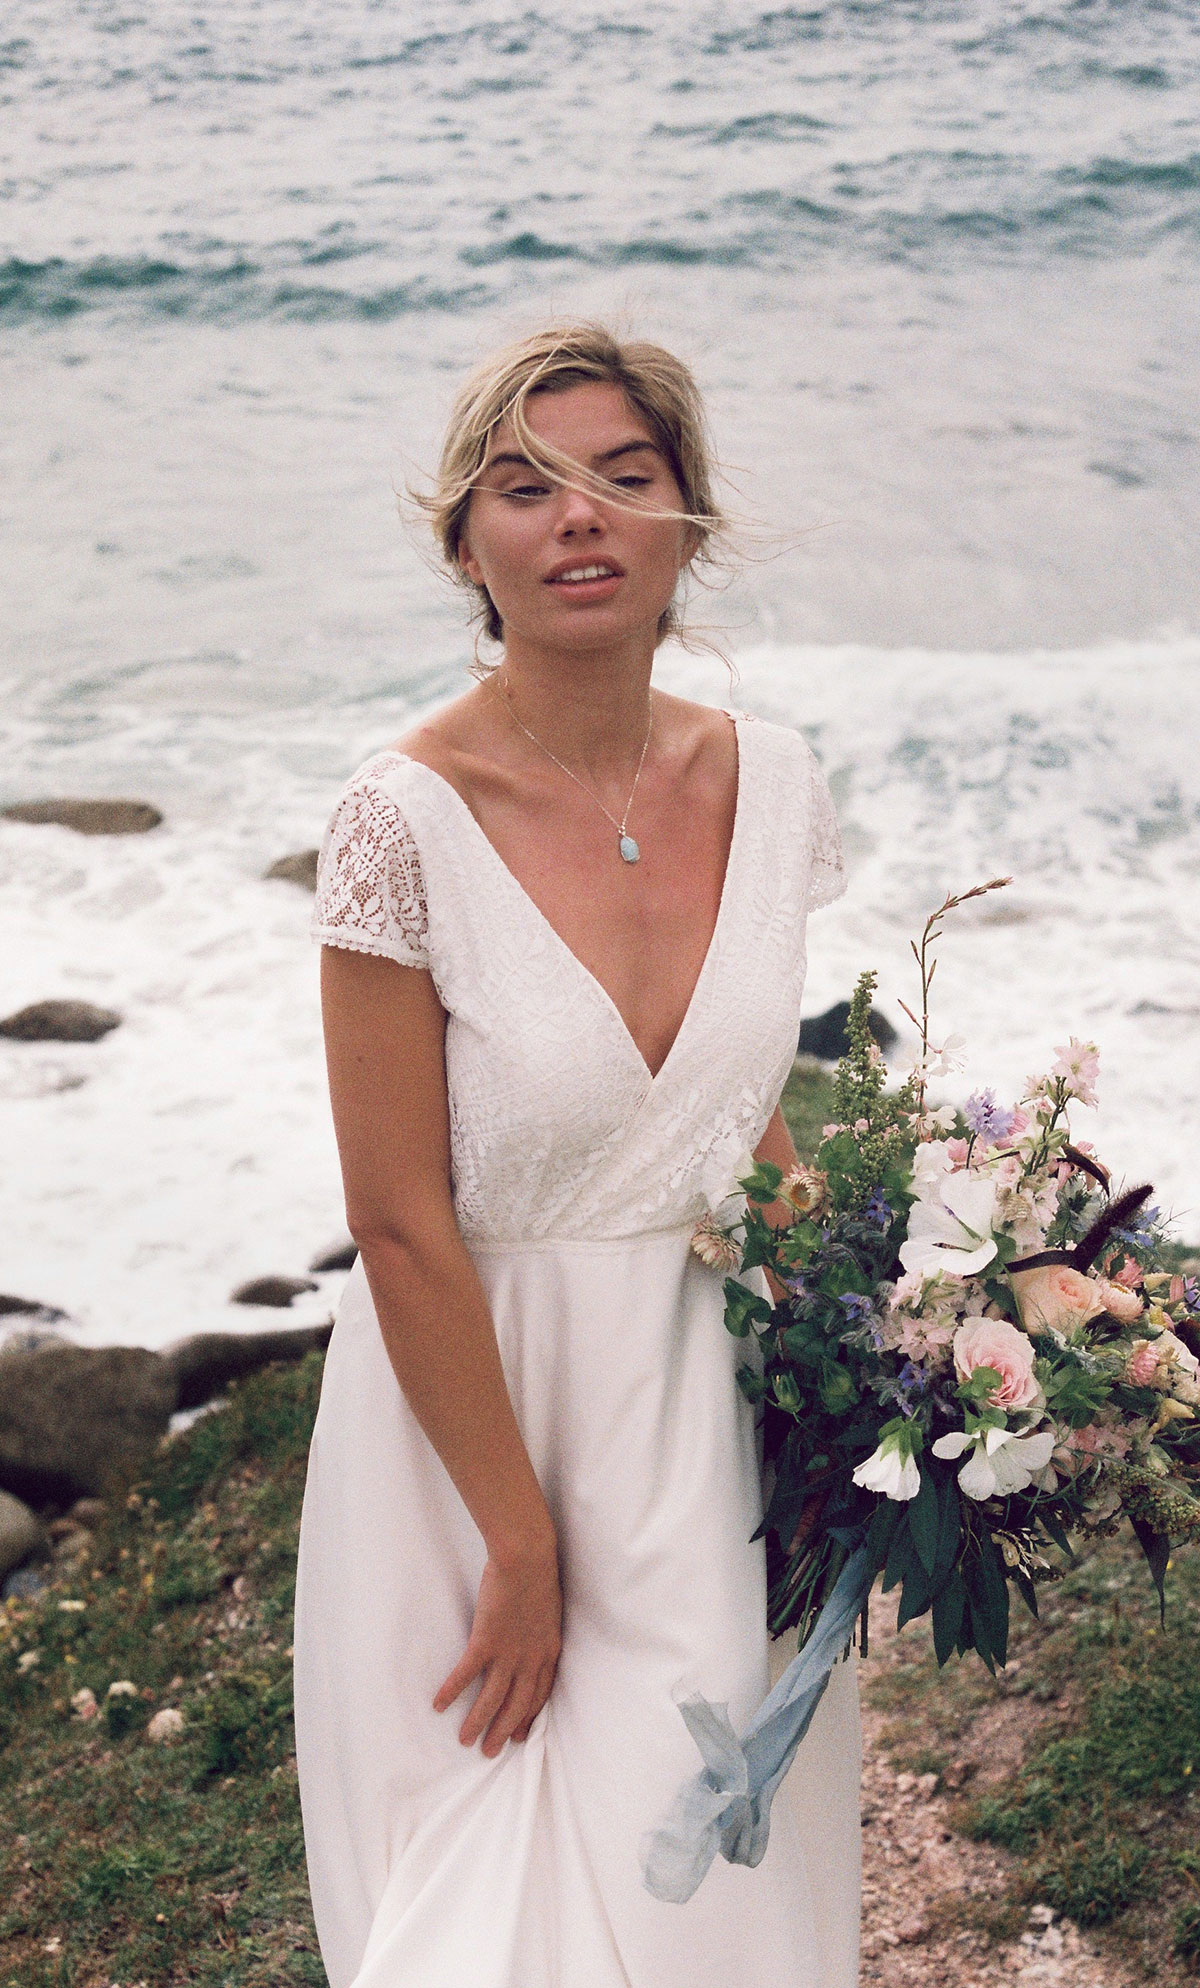 Robin by Sophie Rose Bridal - Hampshire Bridal Designer at Brides of Winchester, Winchester